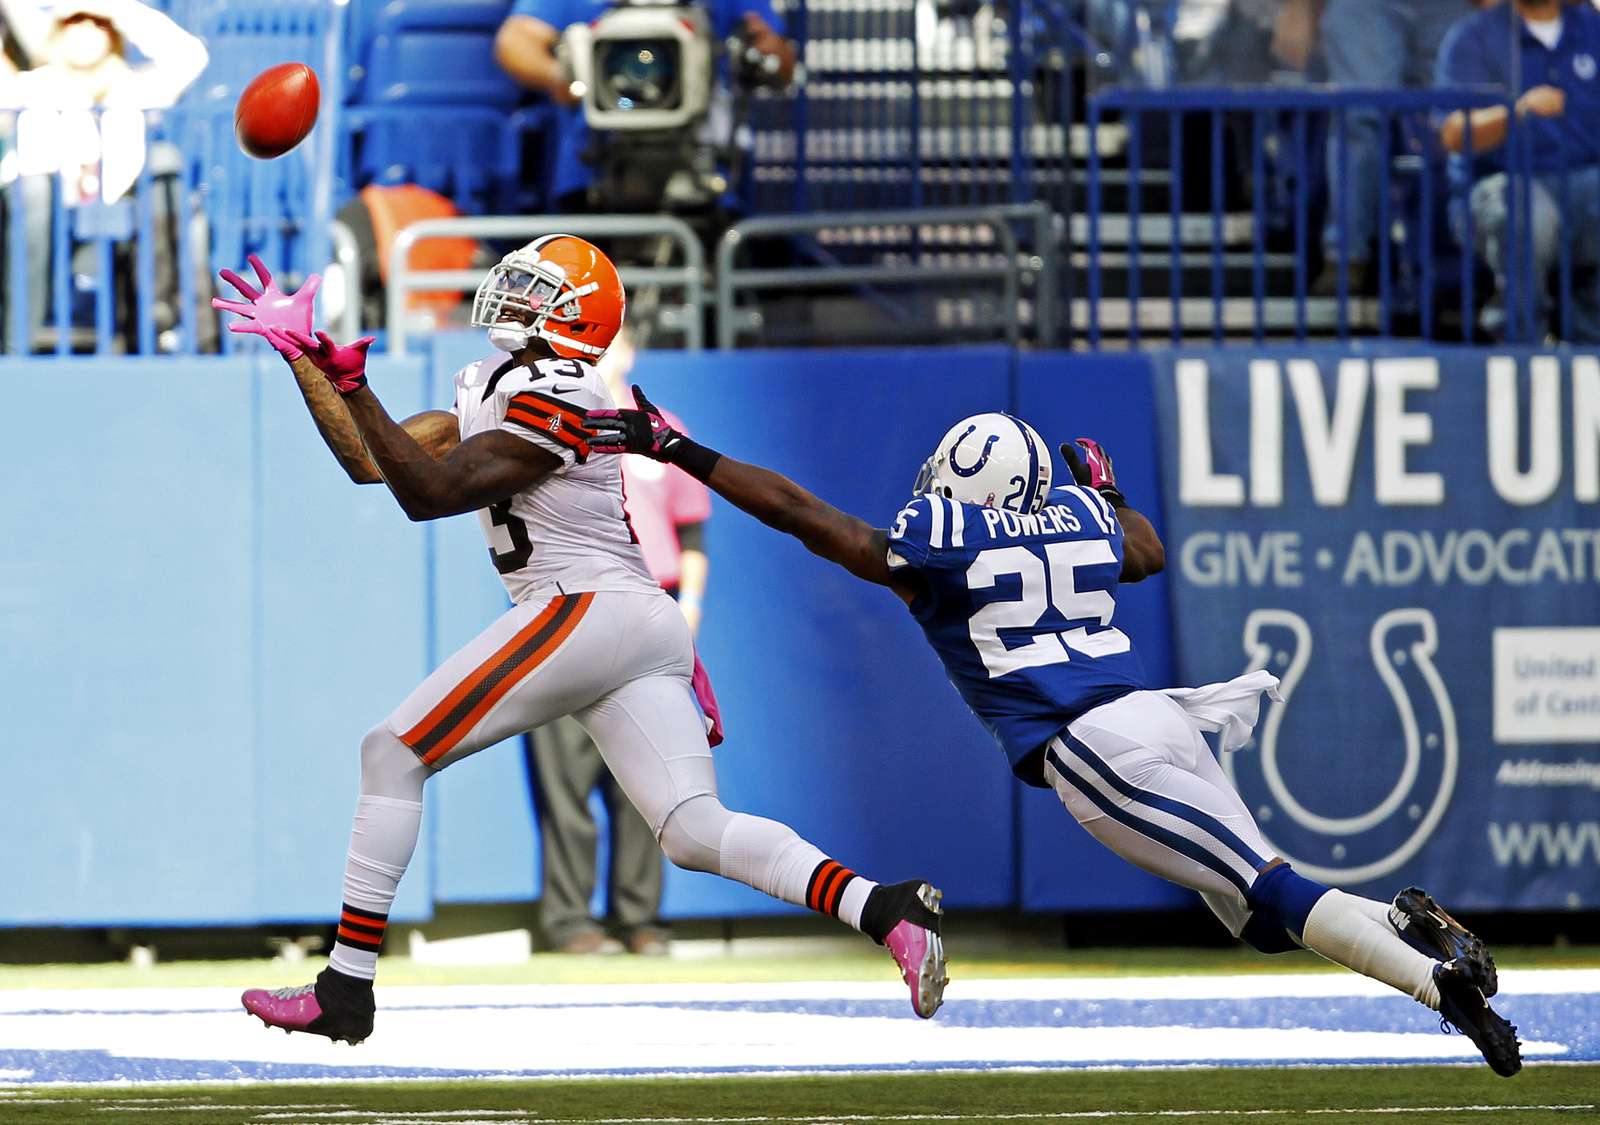 Cleveland Browns wide receiver Josh Gordon (13) just misses a catch that would have been a touchdown against Indianapolis Colts cornerback Jerraud Powers (25) on a play during second half action on Oct. 21, 2012, in Indianapolis. The Colts won, 17-13. Credit: Courtesy of MCT